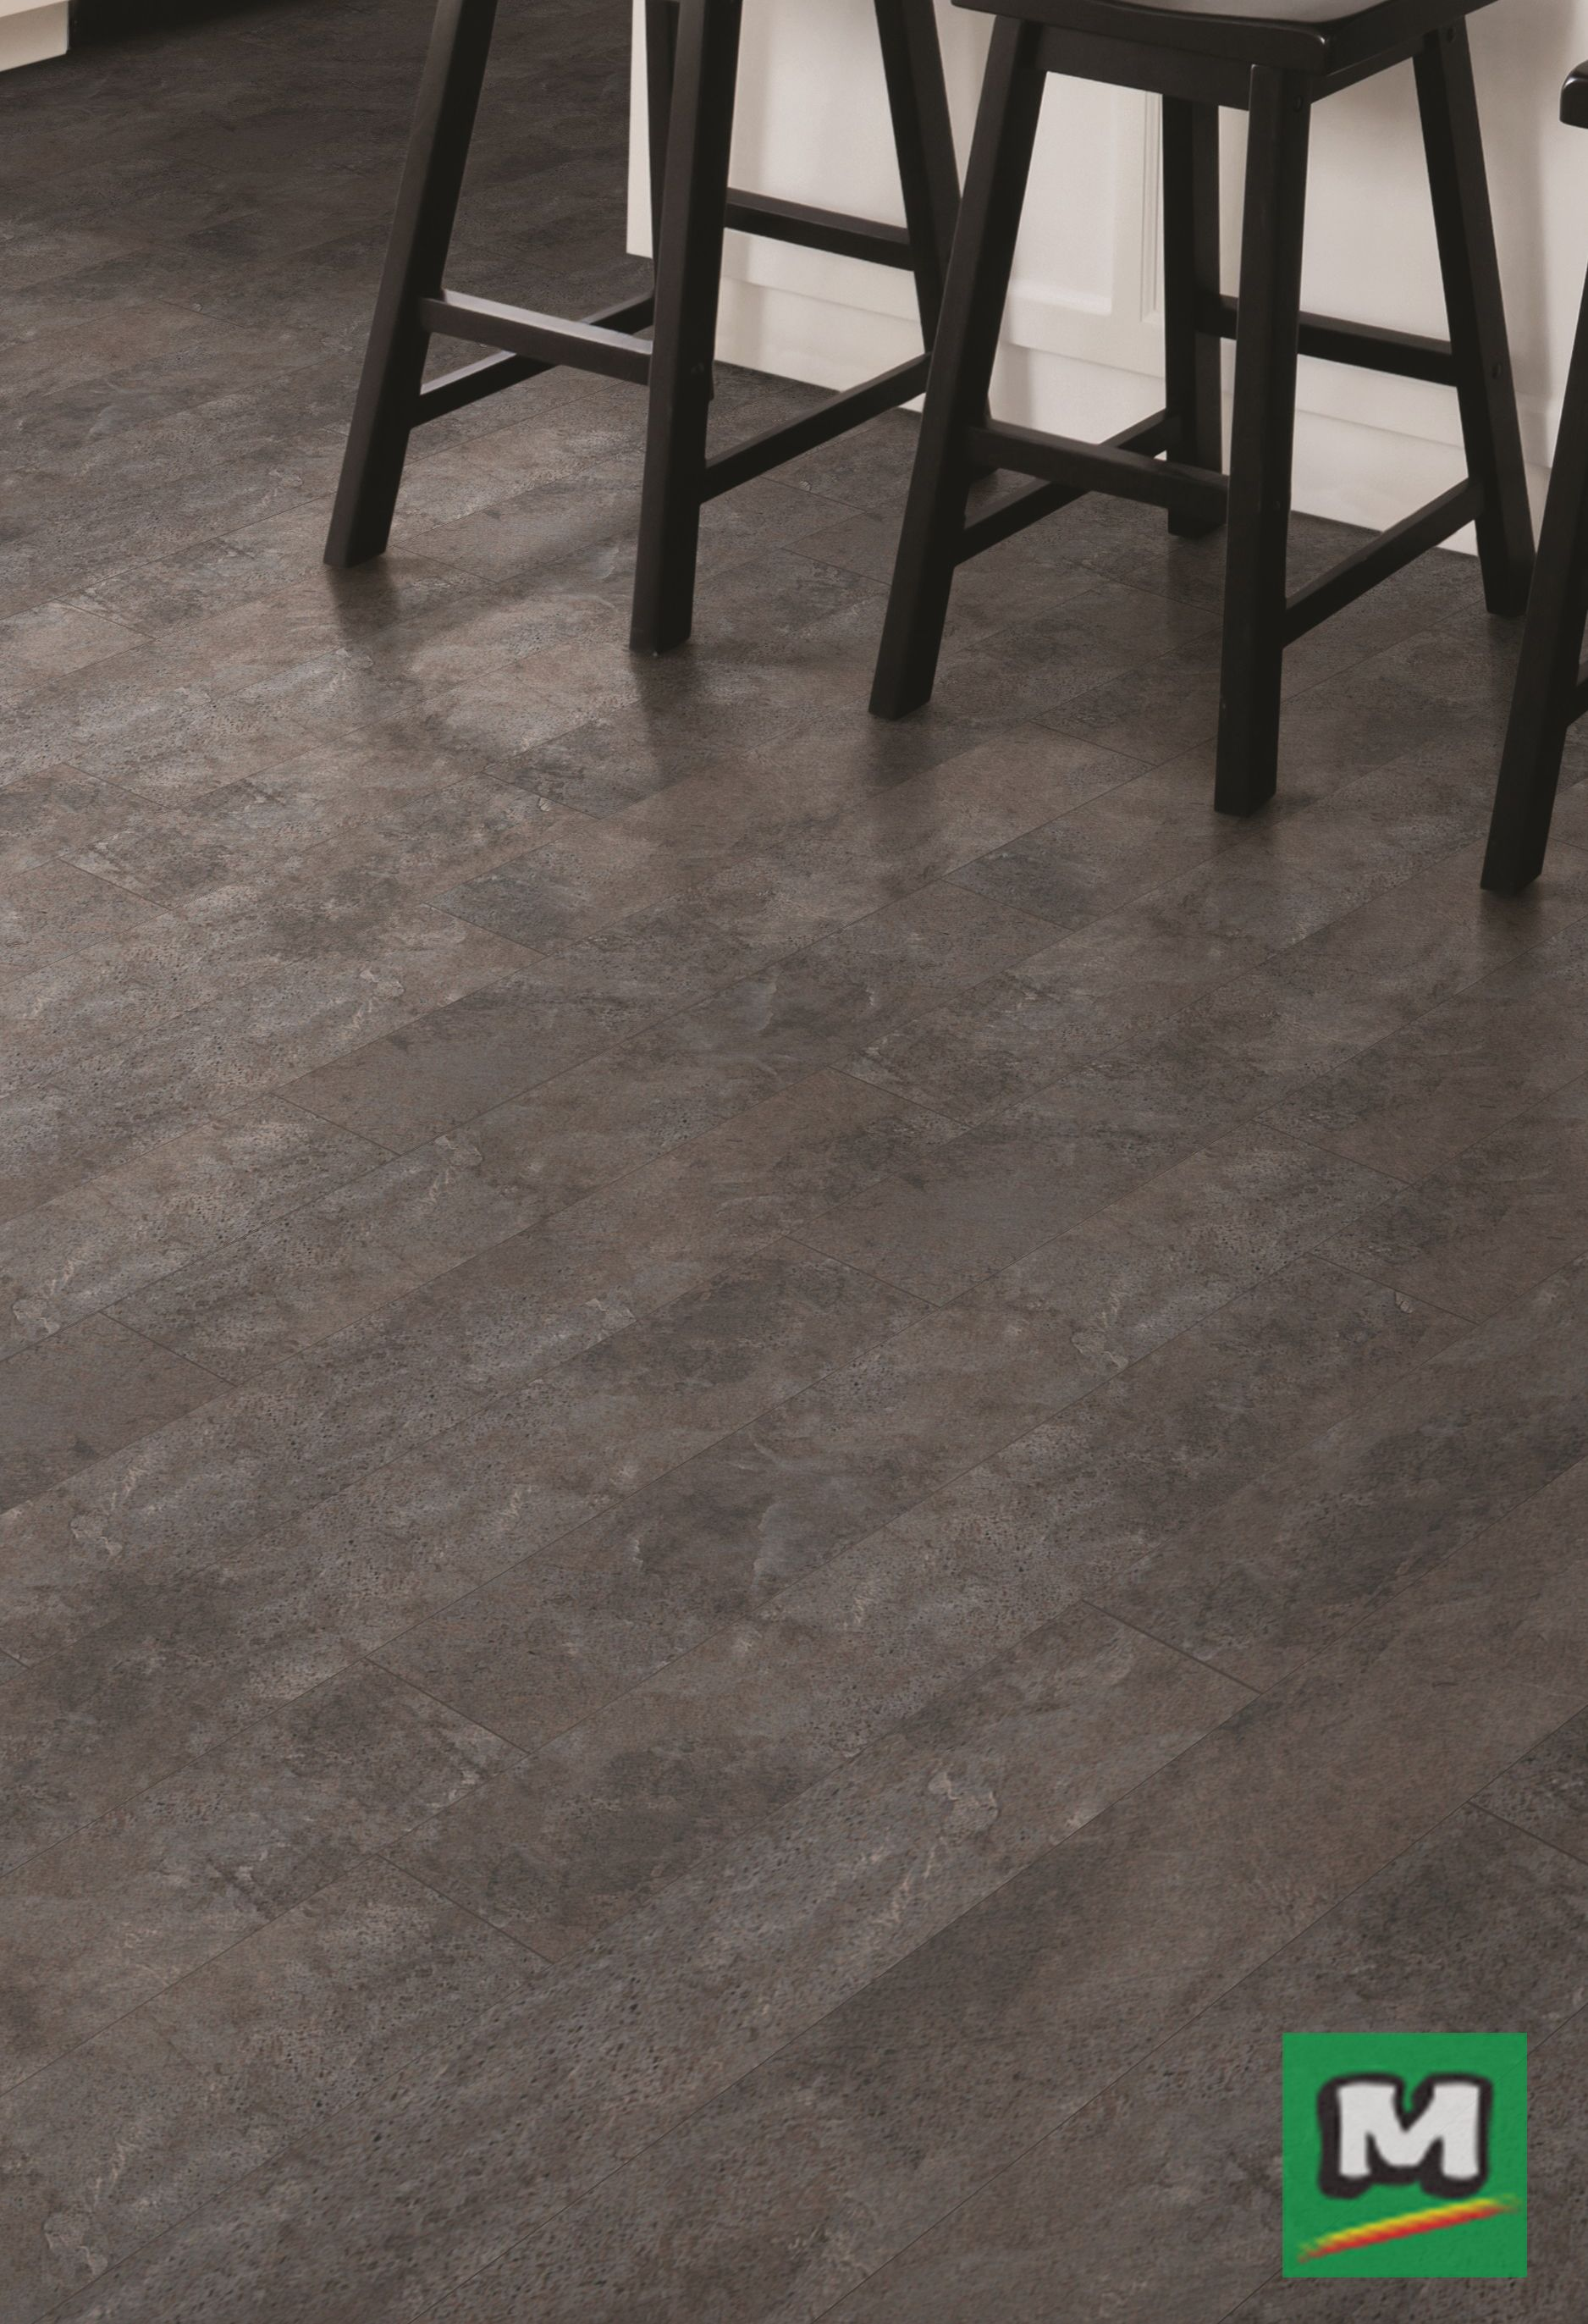 New flooring doesn't have to be frustrating. With Escapade